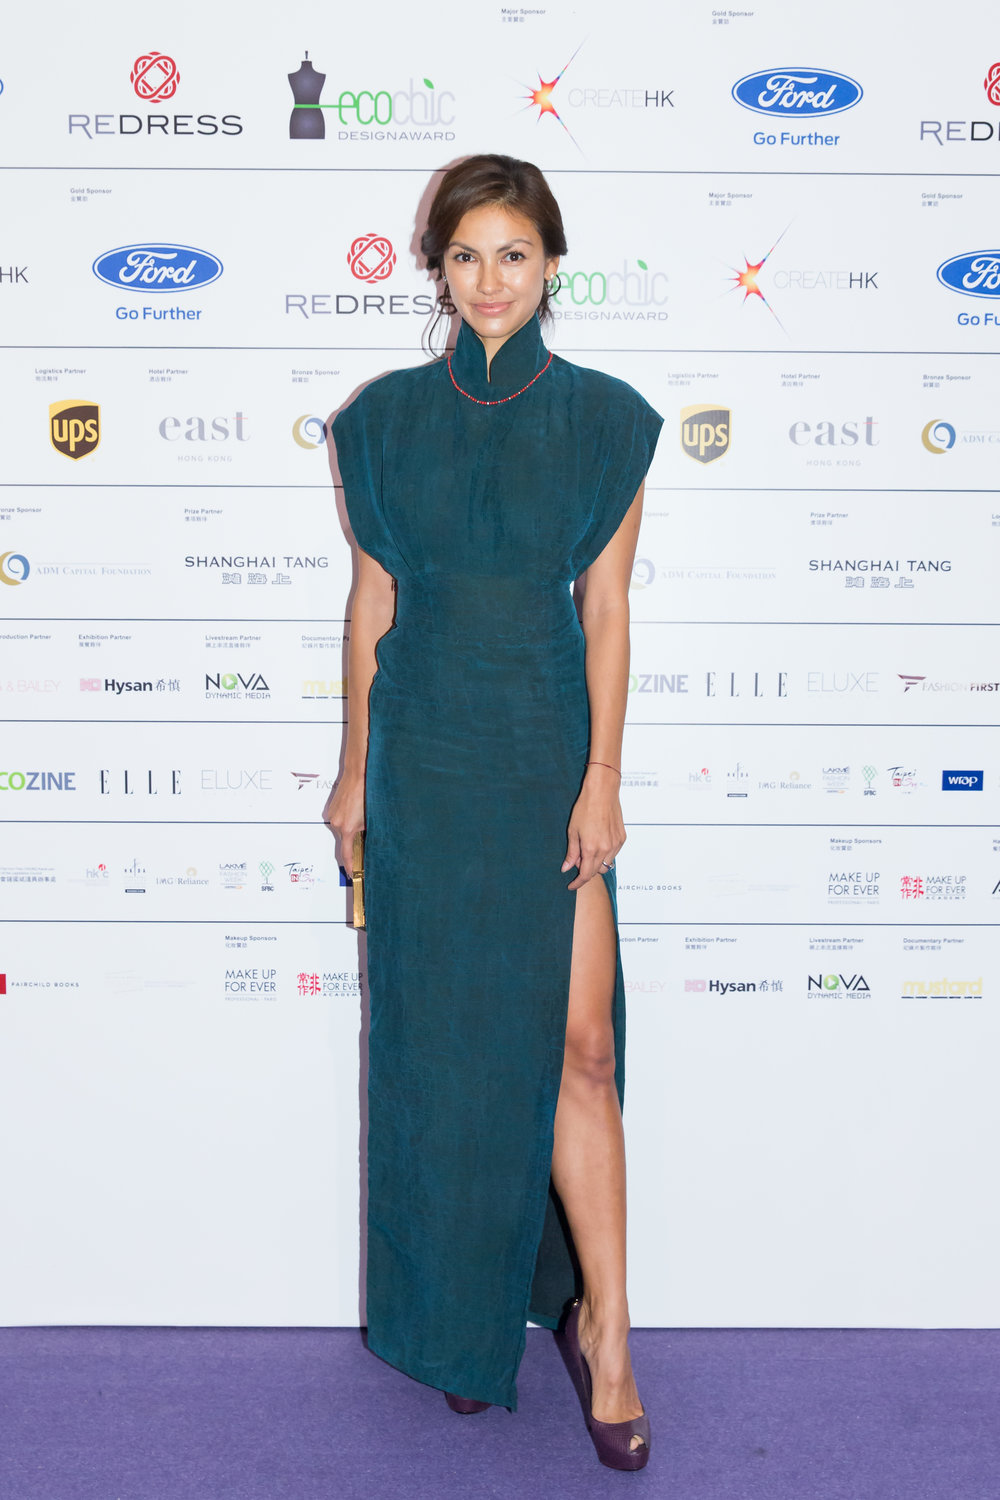 Hong Kong supermodel Rosemary Vandenbroucke wears Cher Chan to attend the Redress Design Award 2015/16 Grand Final Show